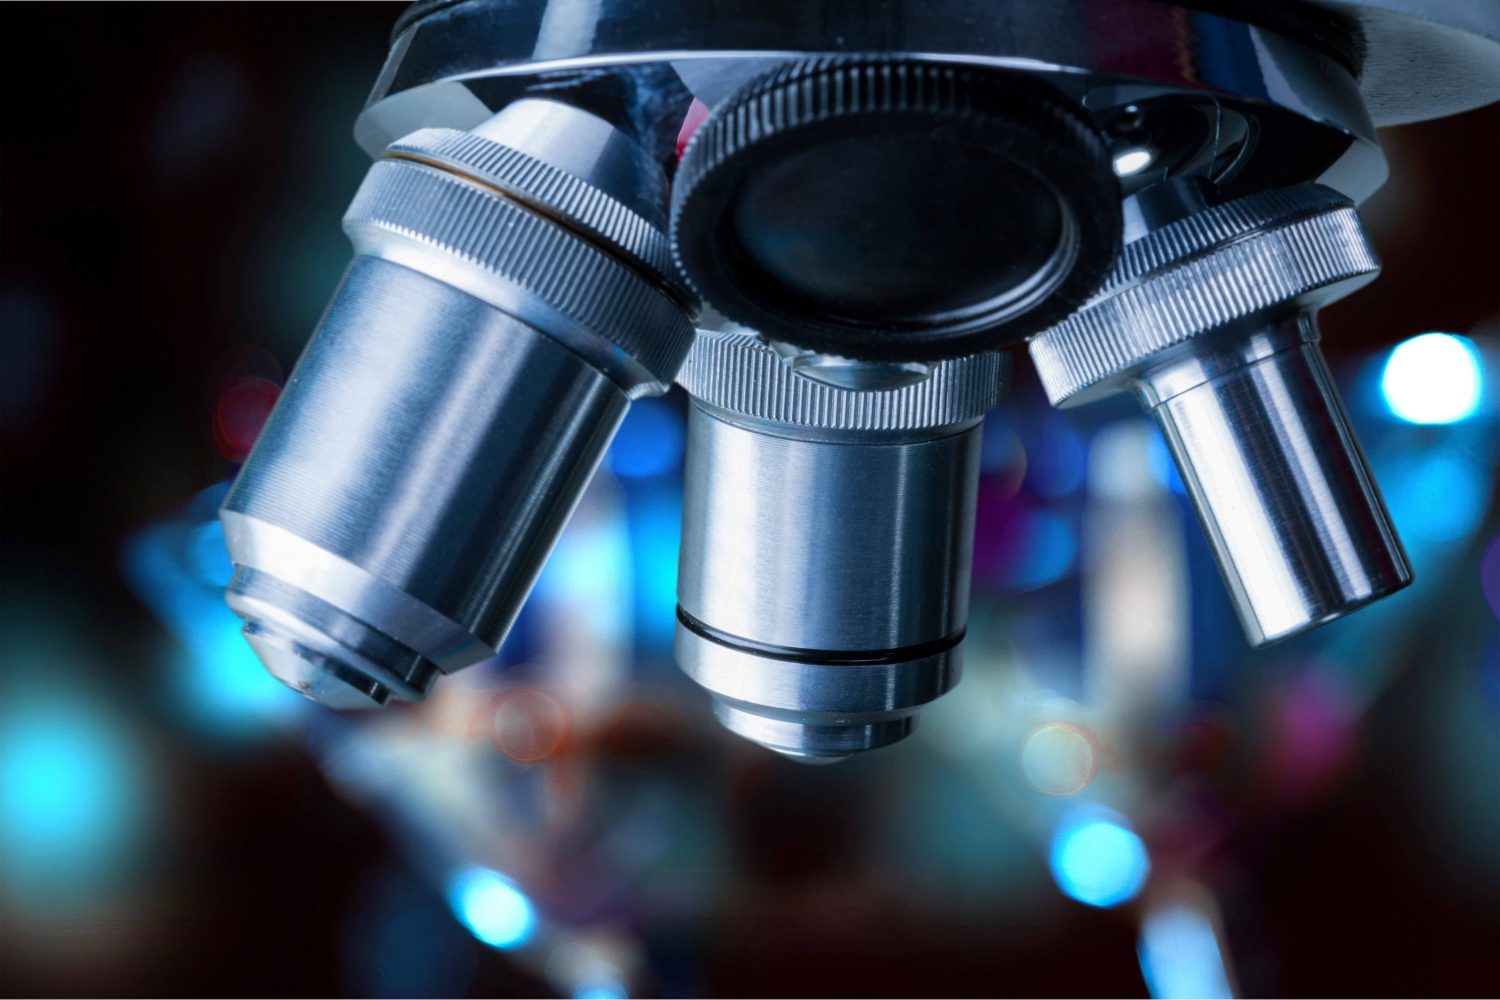 microscope, science